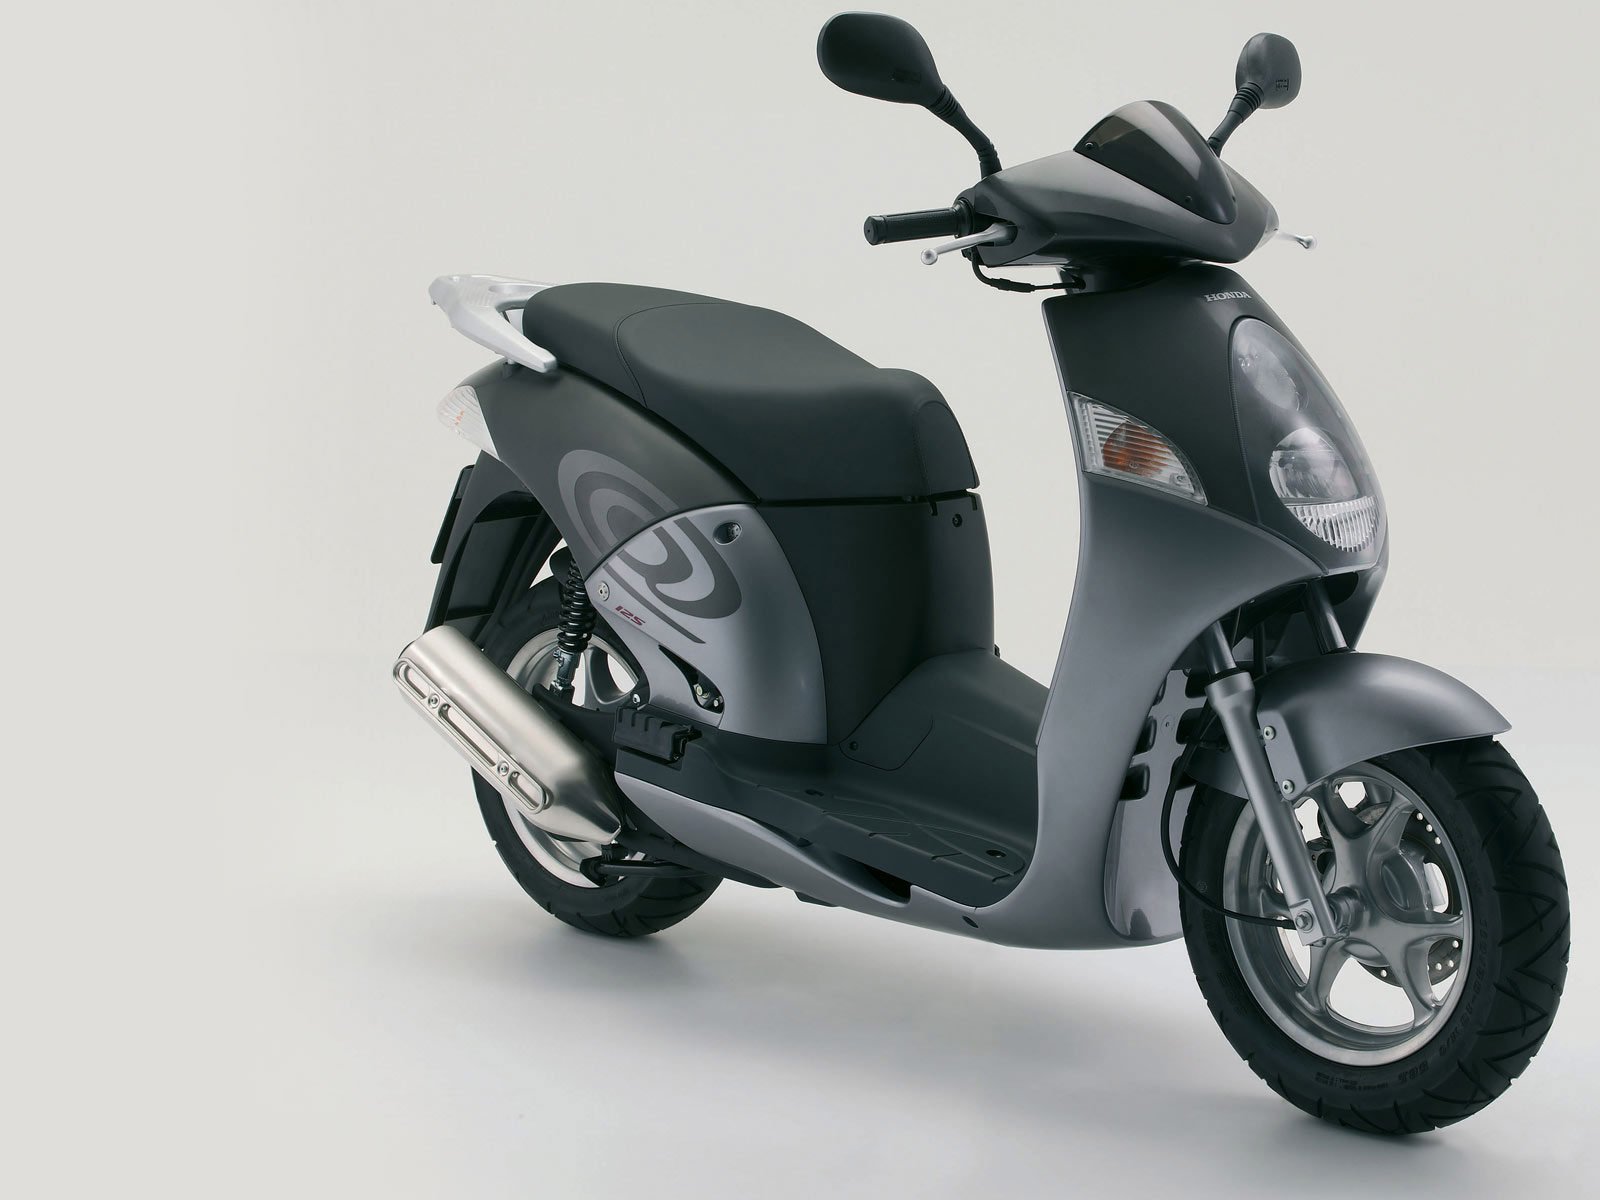 2006 honda 125 scooter pictures insurance info. Black Bedroom Furniture Sets. Home Design Ideas